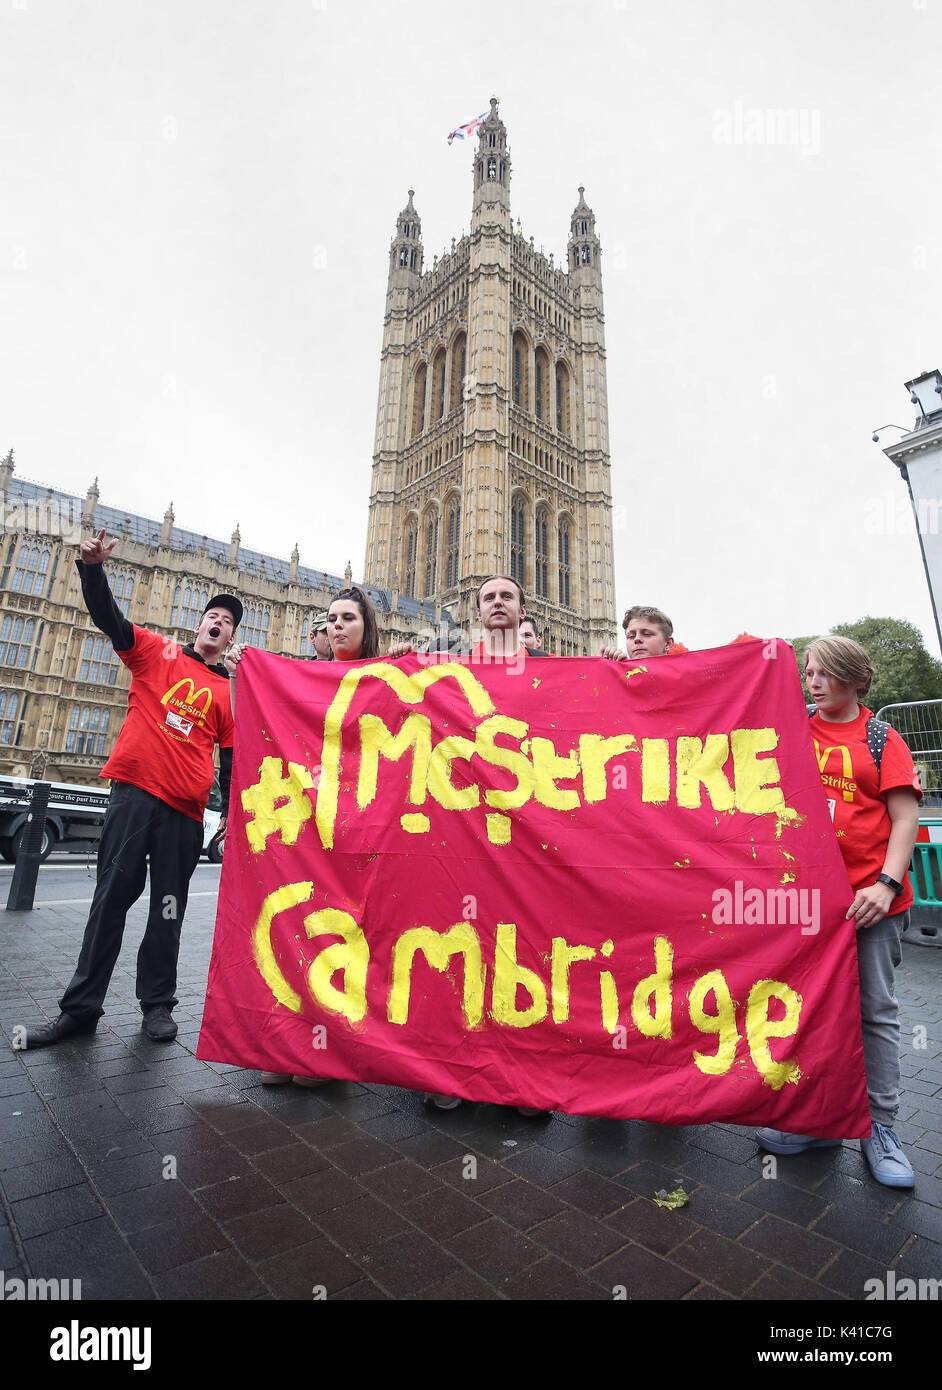 Supporters and workers from McDonald's restaurants in Cambridge during a rally at Old Palace Yard, London, after they voted overwhelmingly in favour of industrial action, amid concerns over working conditions and the use of zero-hour contracts. - Stock Image